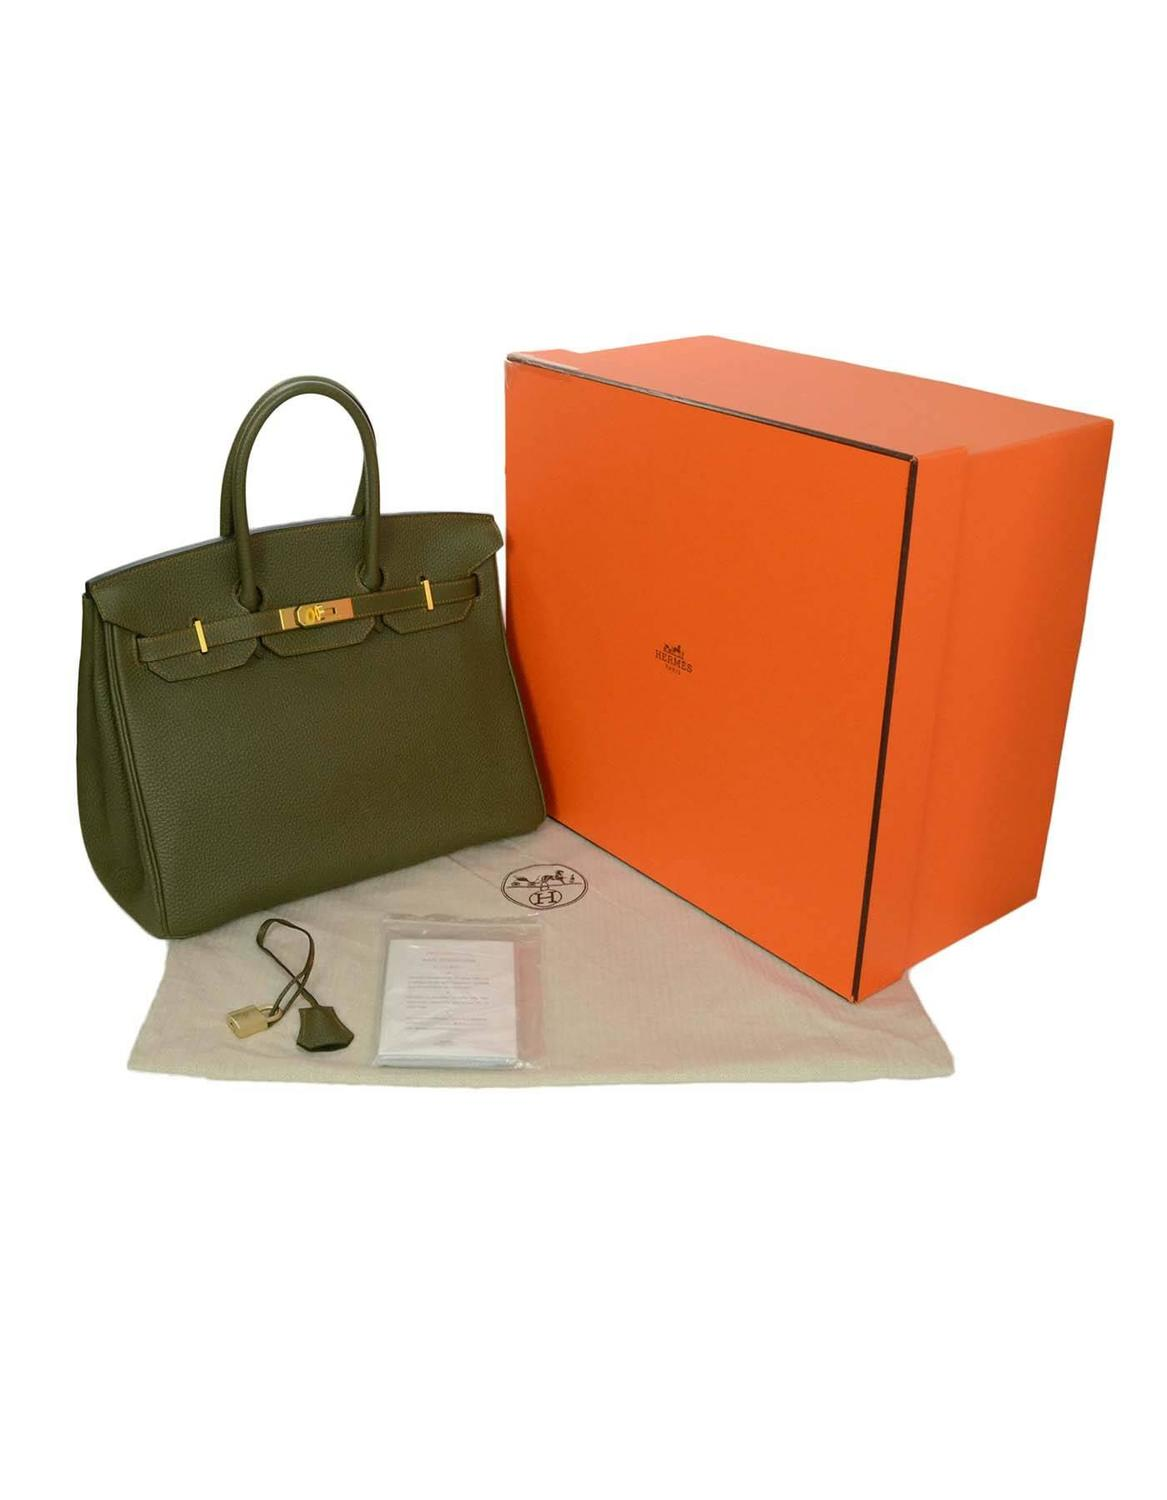 Hermes Olive Green Togo Leather Special Order 35cm Birkin Bag GHW at 1stdibs 18f208ee97119